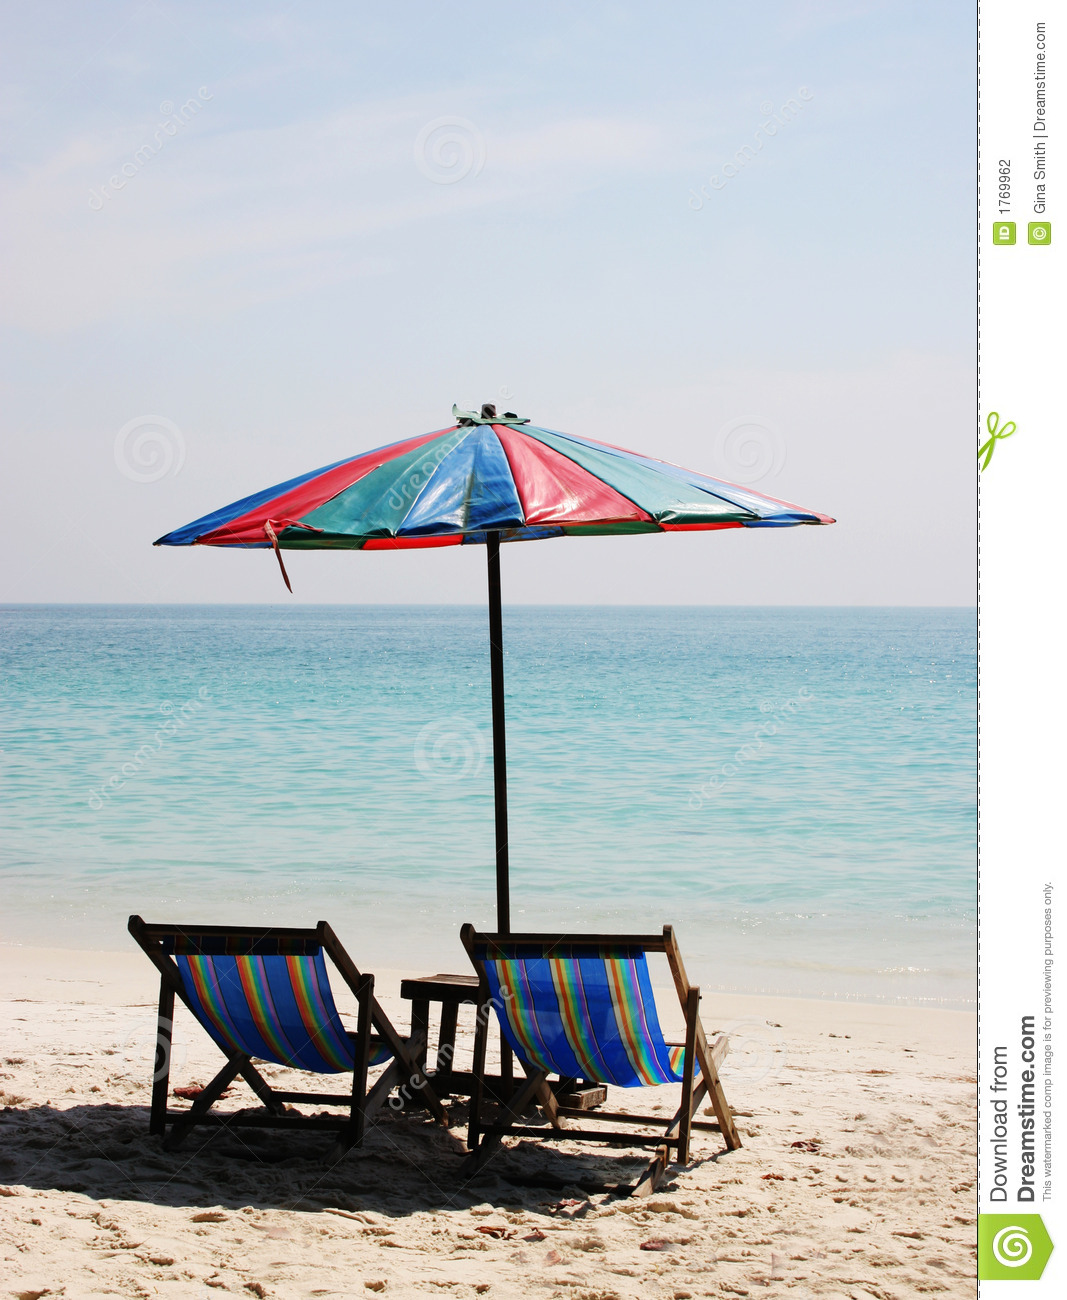 Deck Chairs On A White Sandy Beach Stock Photography - Image: 1769962